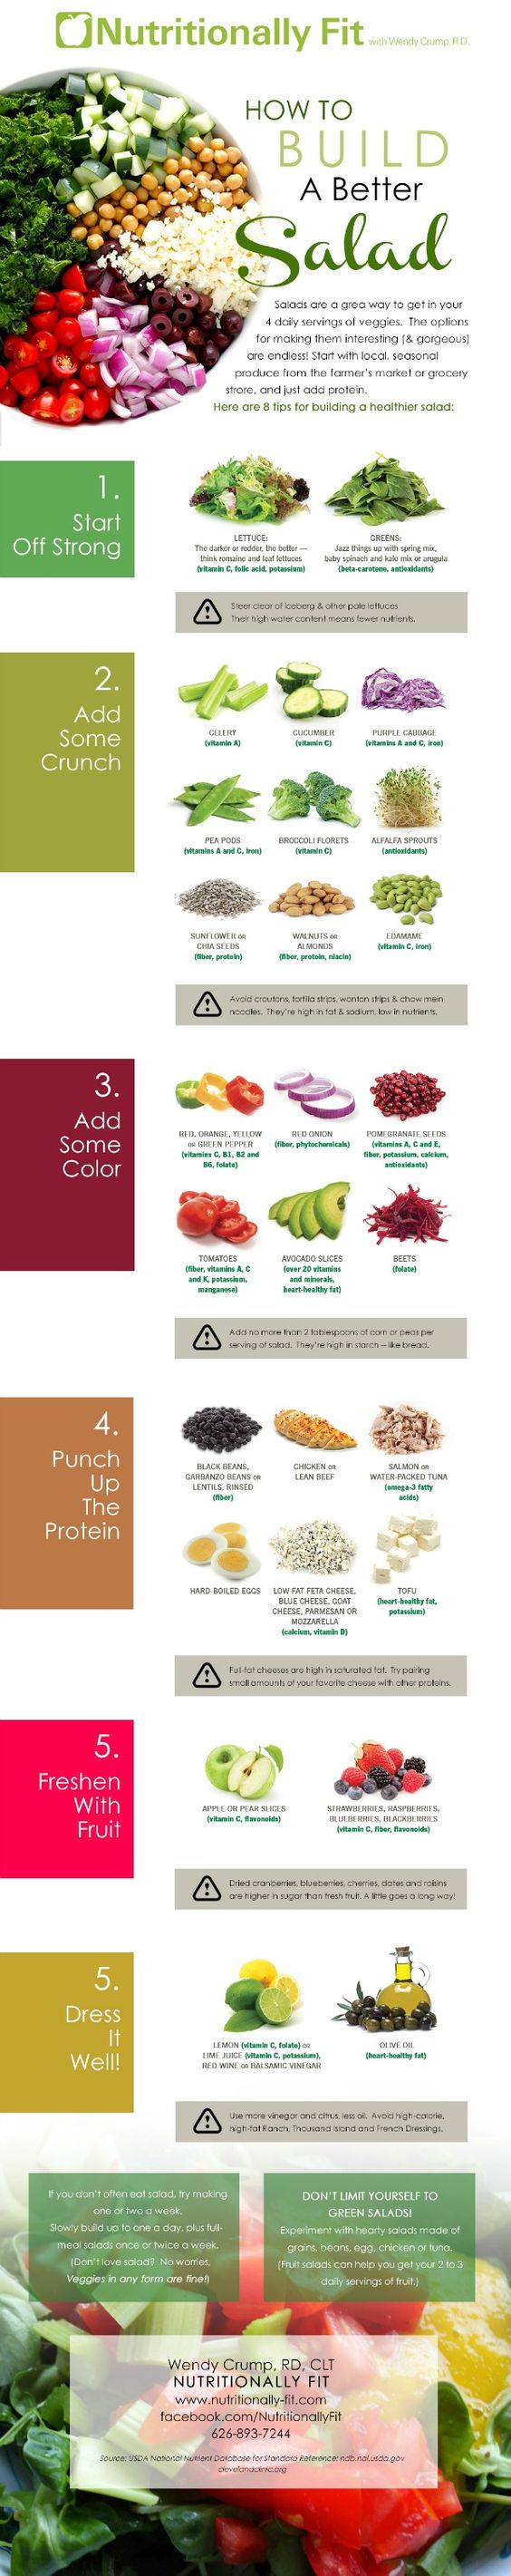 how-to-build-a-better-salad-infographic